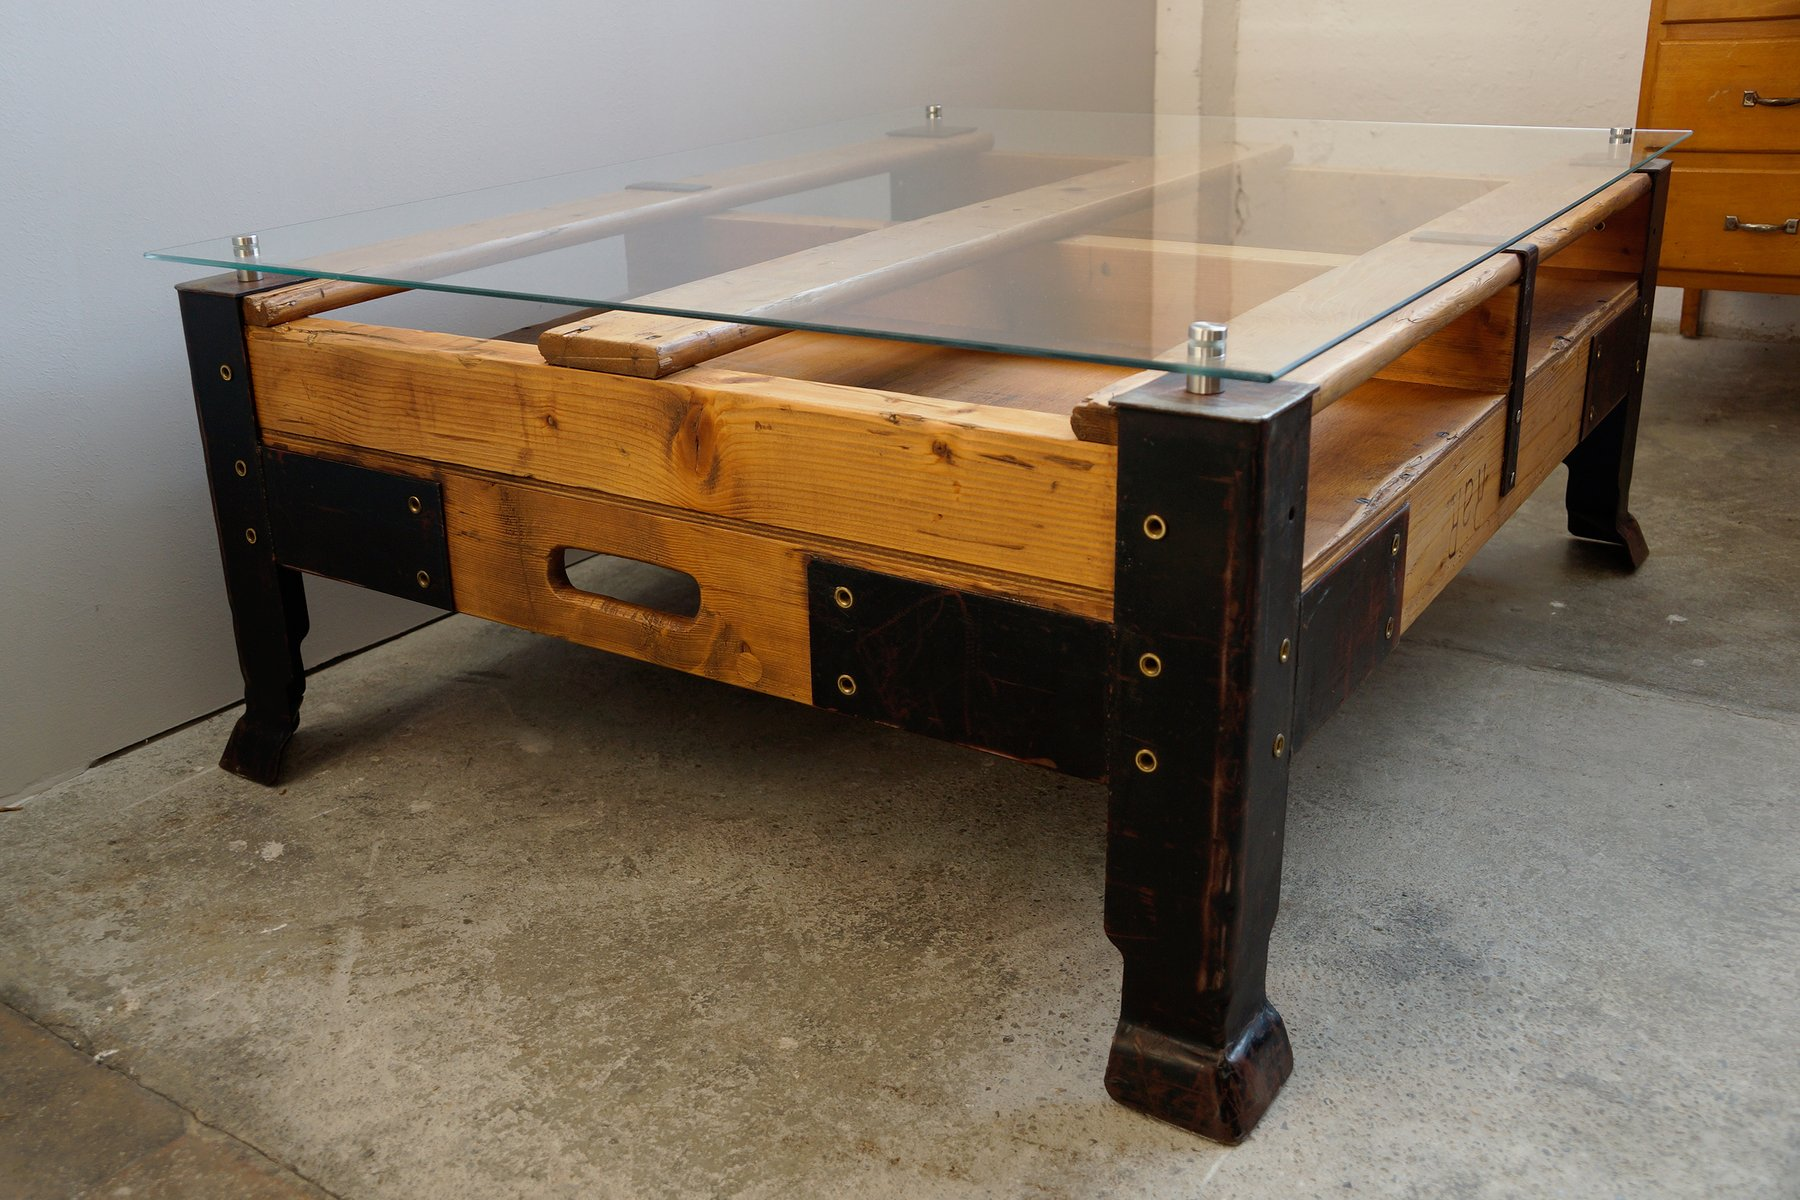 Industrial Pallet Coffee Table With Glass Top 10 $1,43600 Price